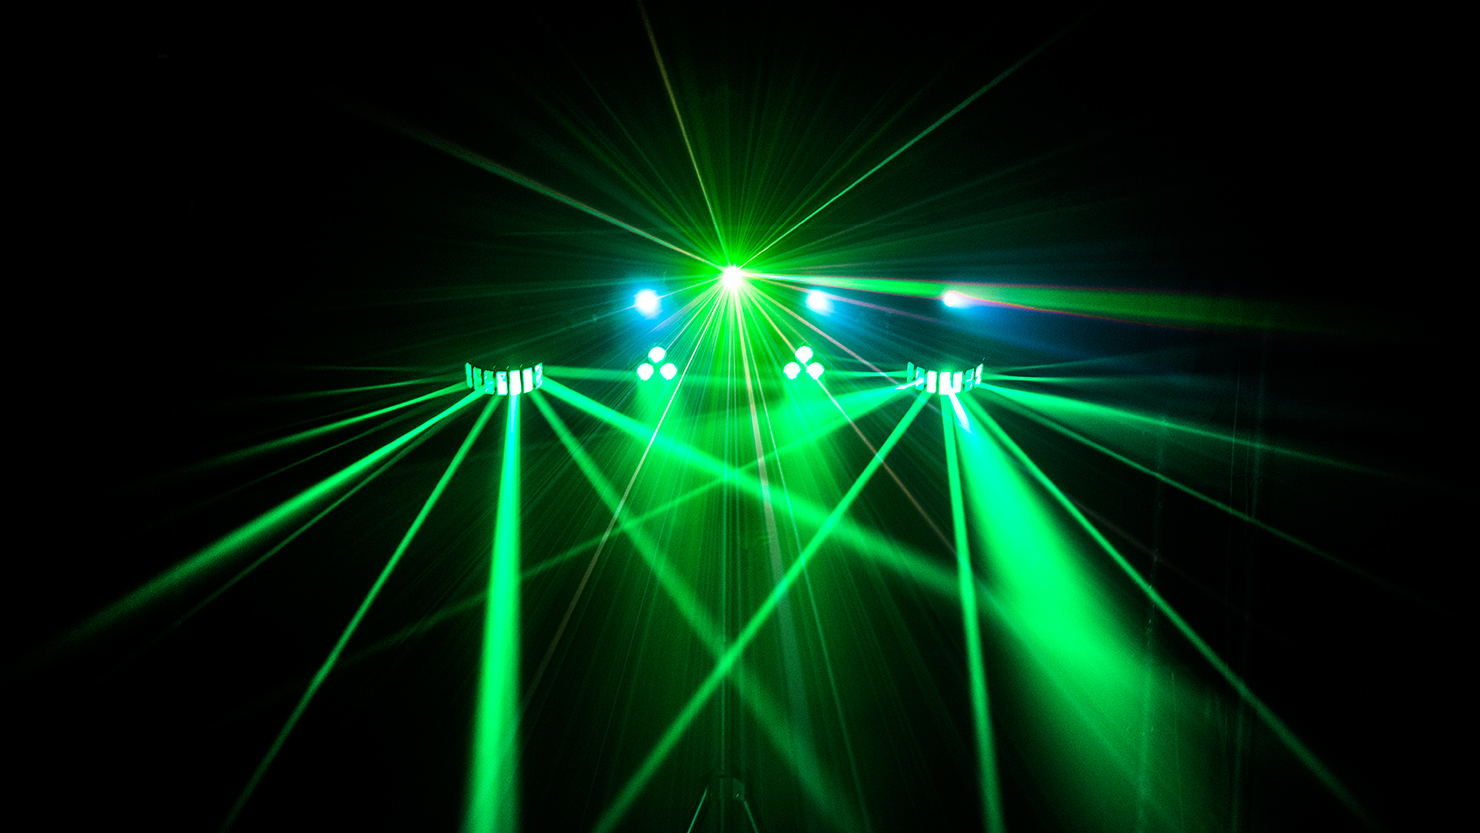 Gigbar 2 Chauvet Dj Led Strobe Light Circuit With Chasing Flashing Effects Electronic Previousnext